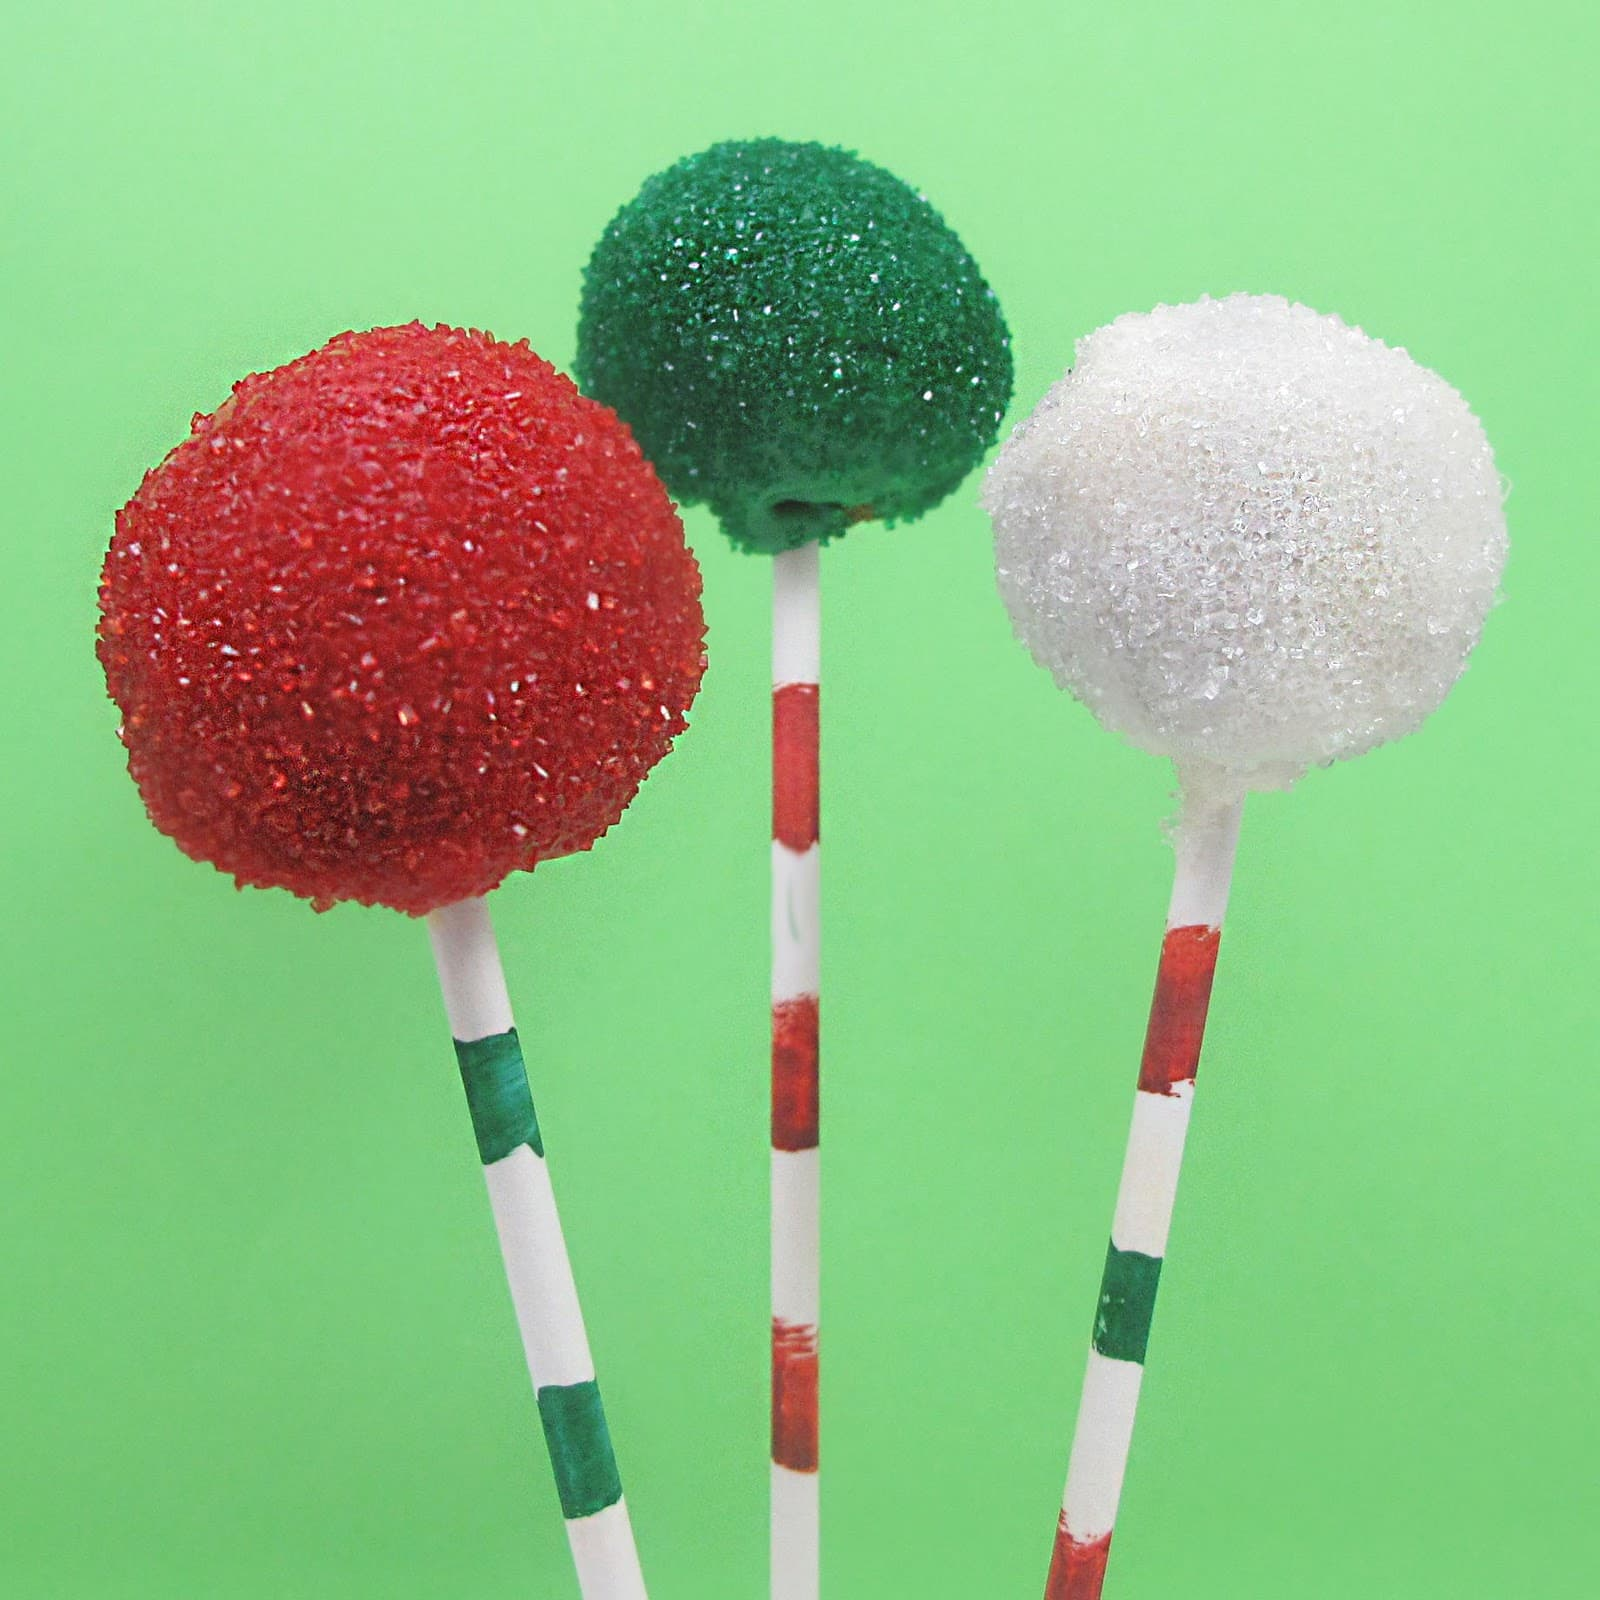 Cake Pop Baking Tray Recipe